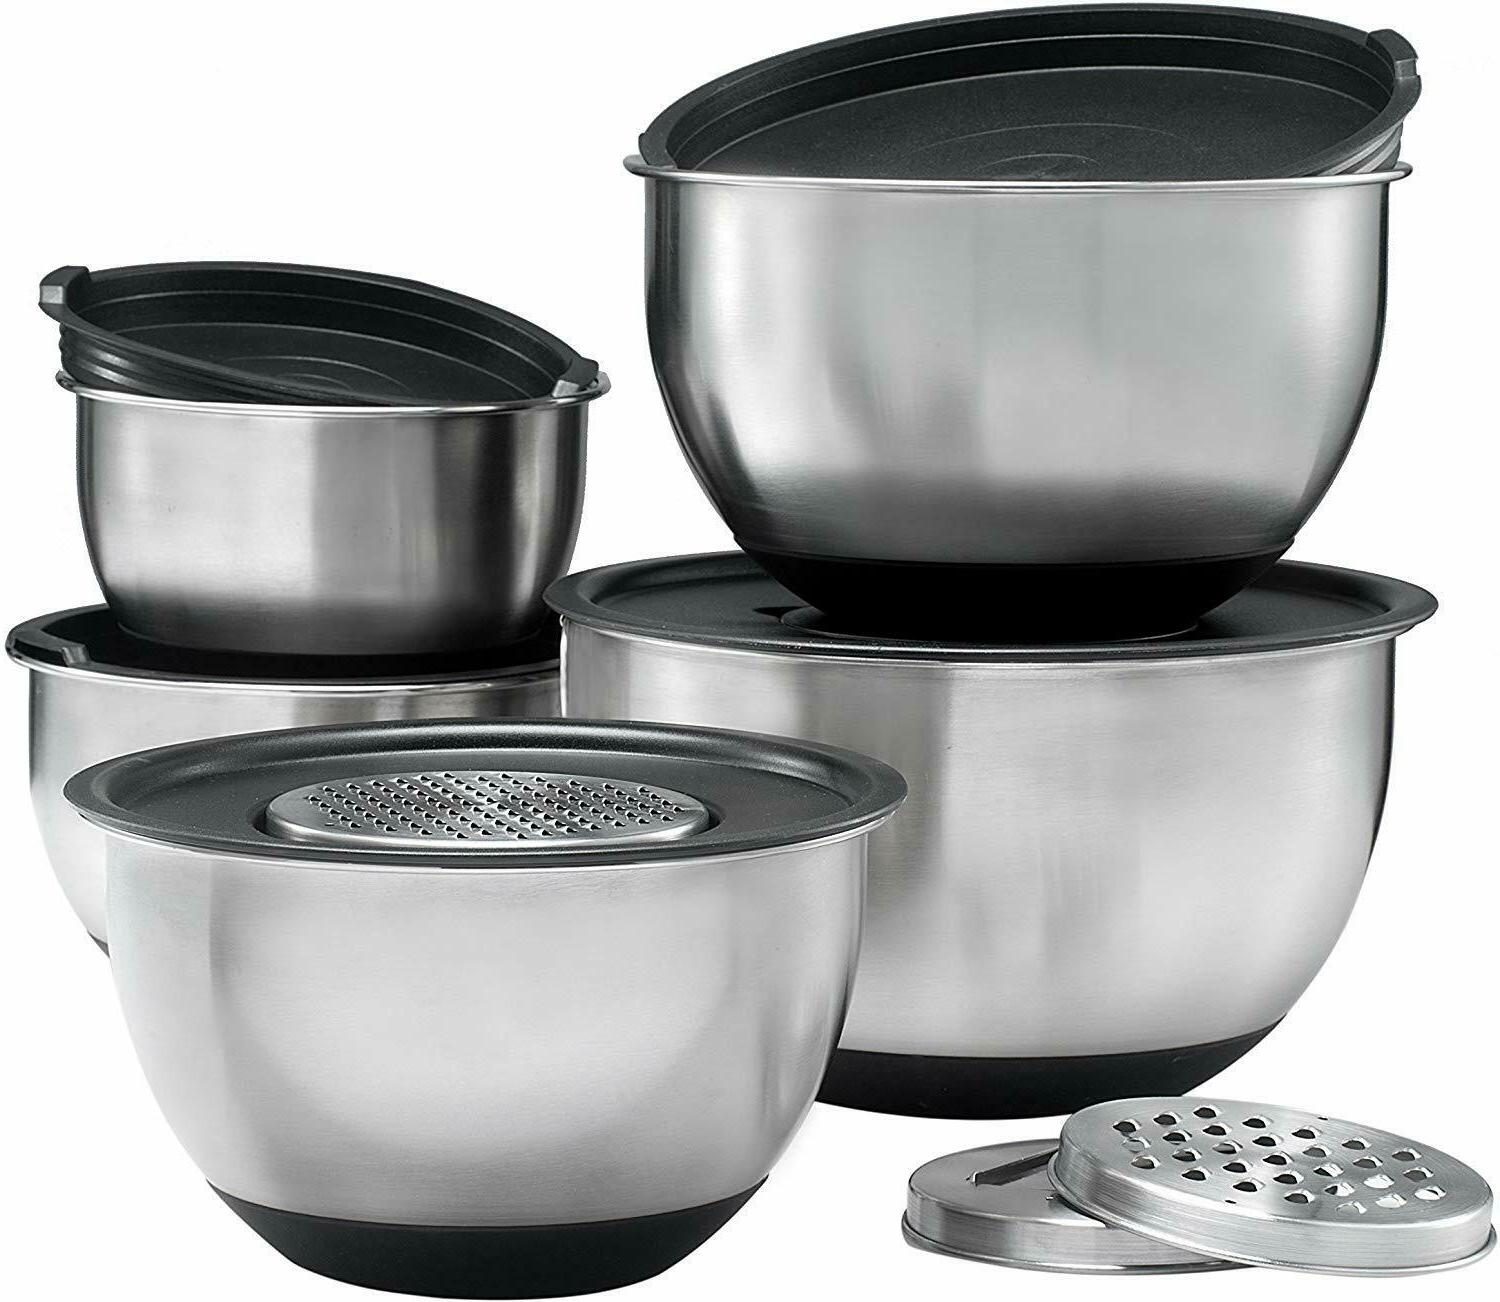 Stainless Steel Set With 3 Graters